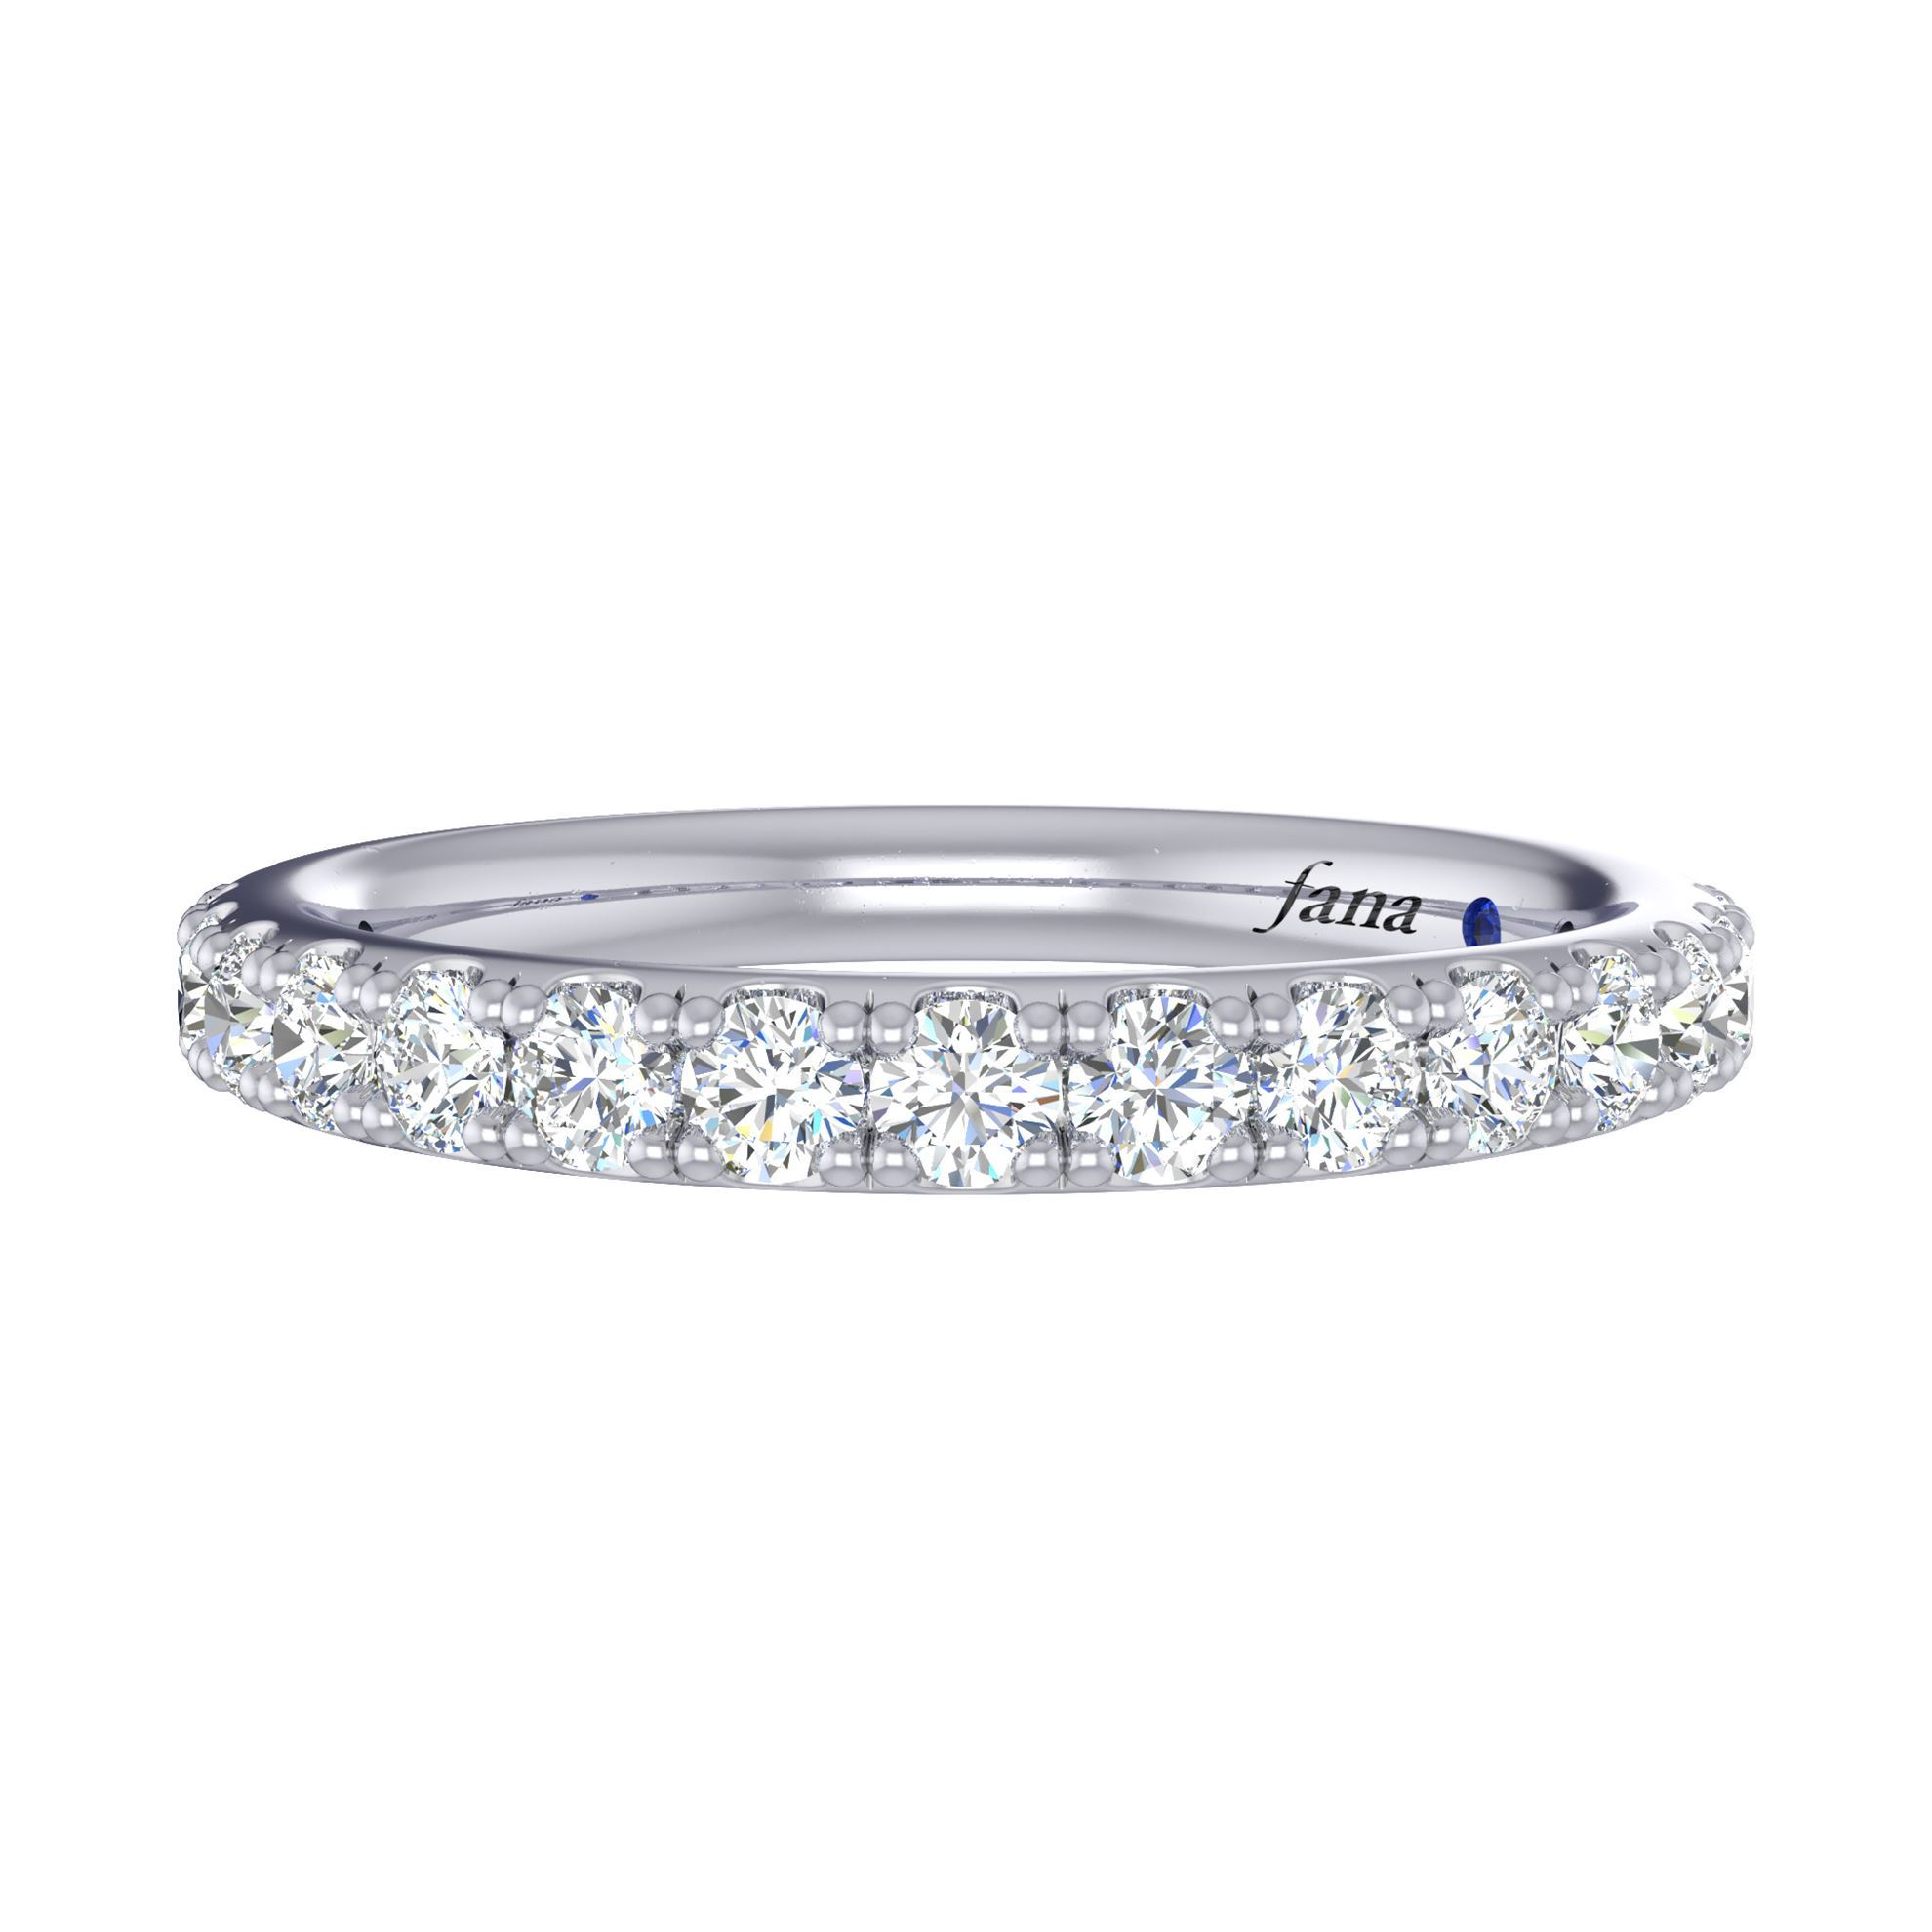 Fana Prong Set Diamond Wedding Ring Pertaining To Most Current Prong Set Round Brilliant Sapphire And Diamond Wedding Bands (View 19 of 25)